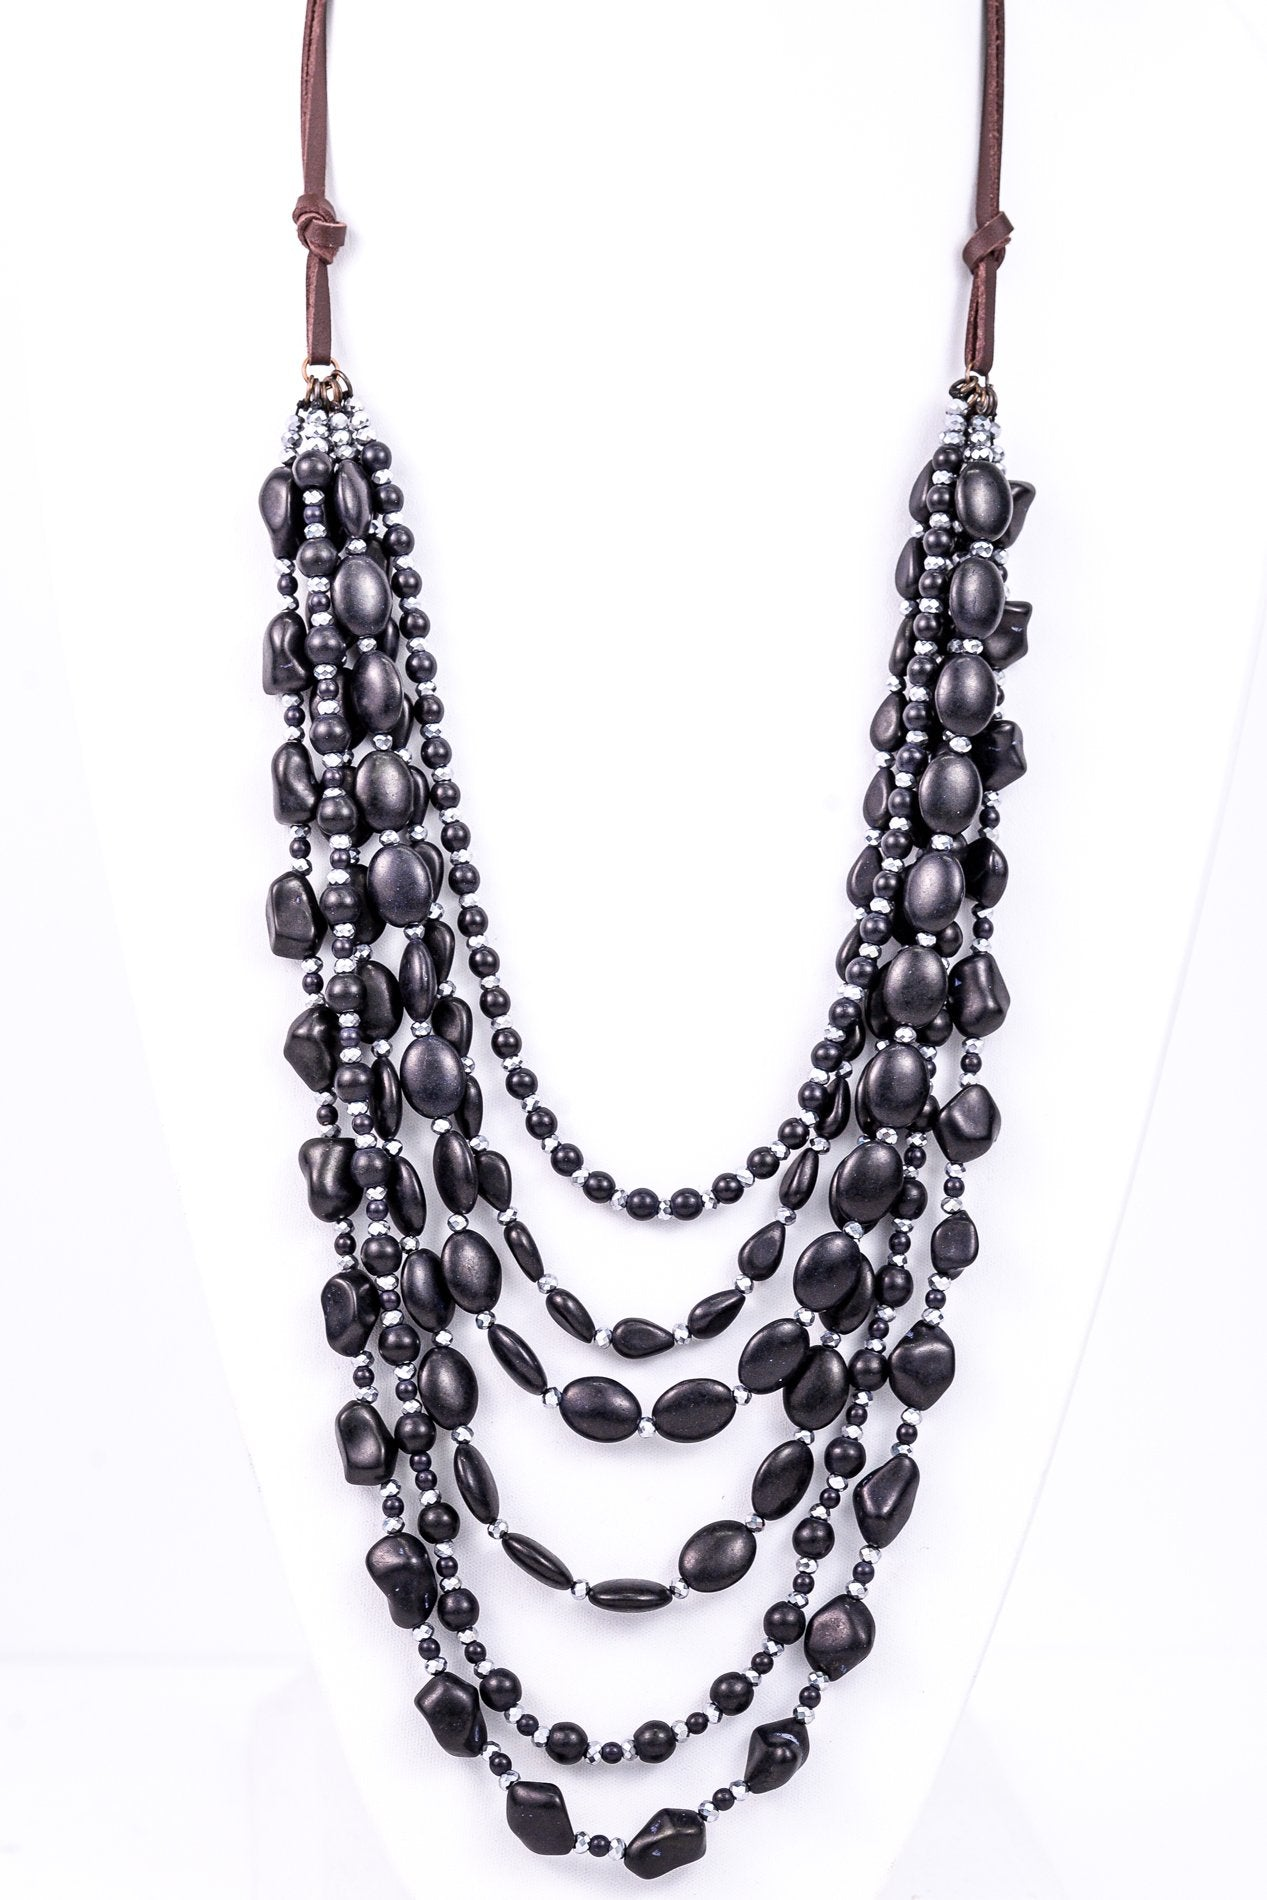 Black/Silver Multi-Layer Beaded On Brown Cord Necklace - NEK2721BK